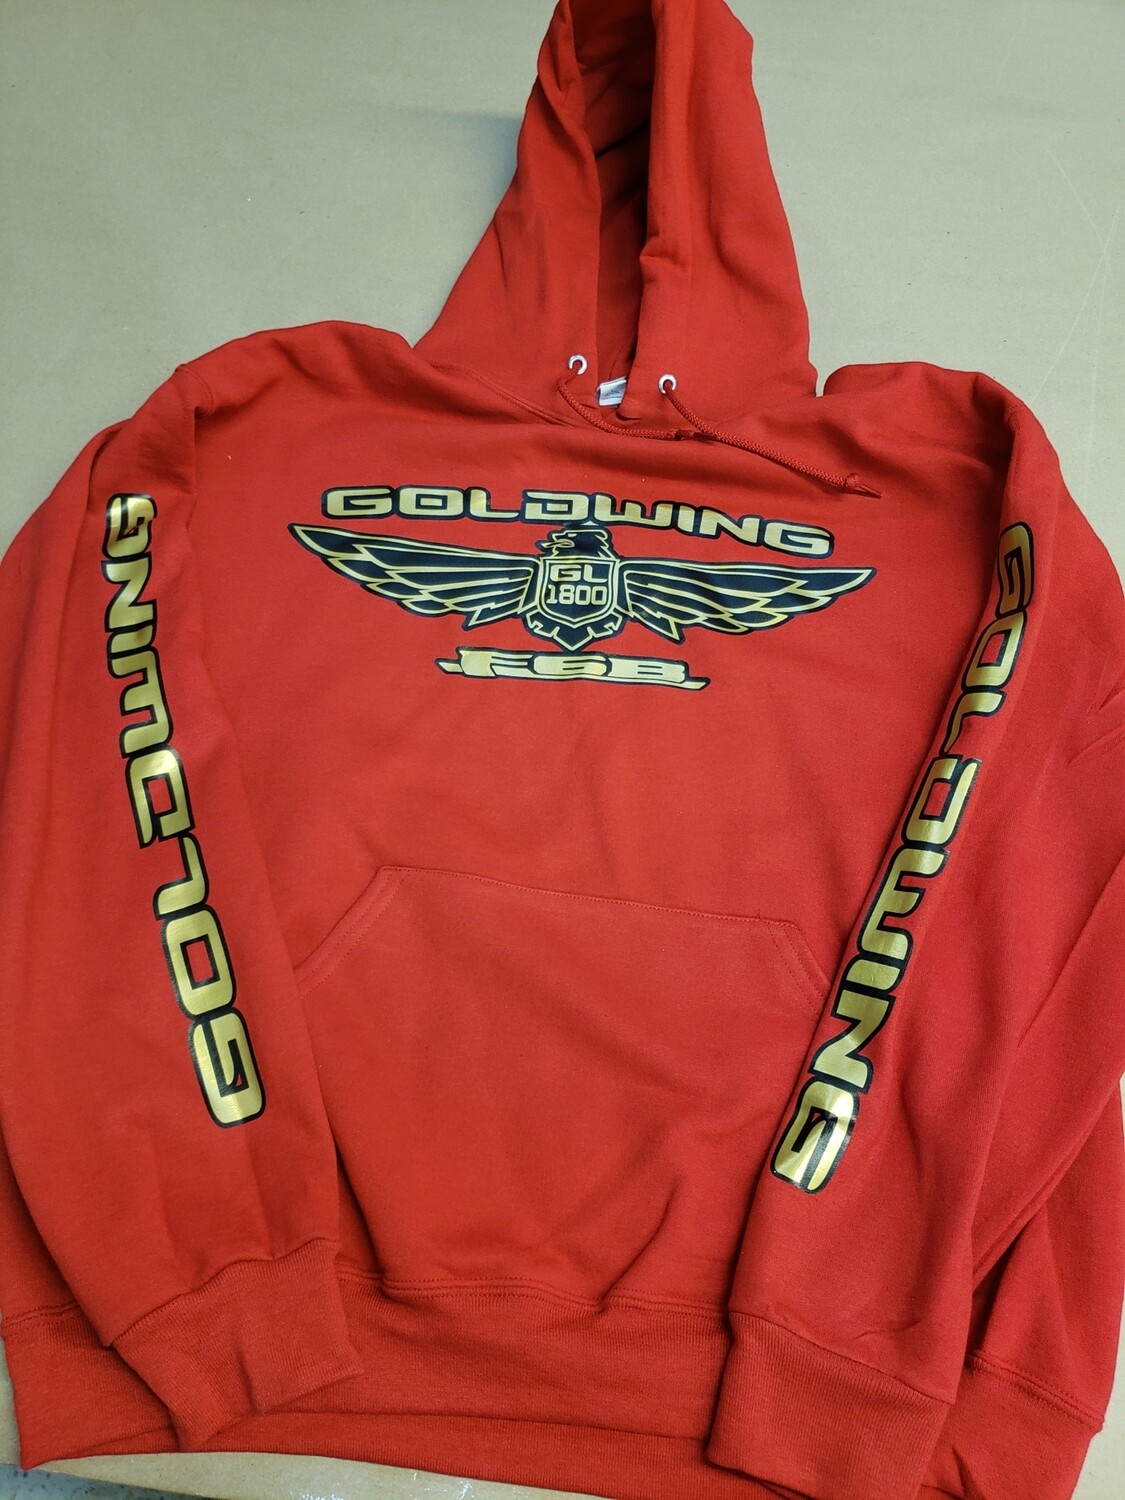 New Goldwing eagle hoodie or short sleeve